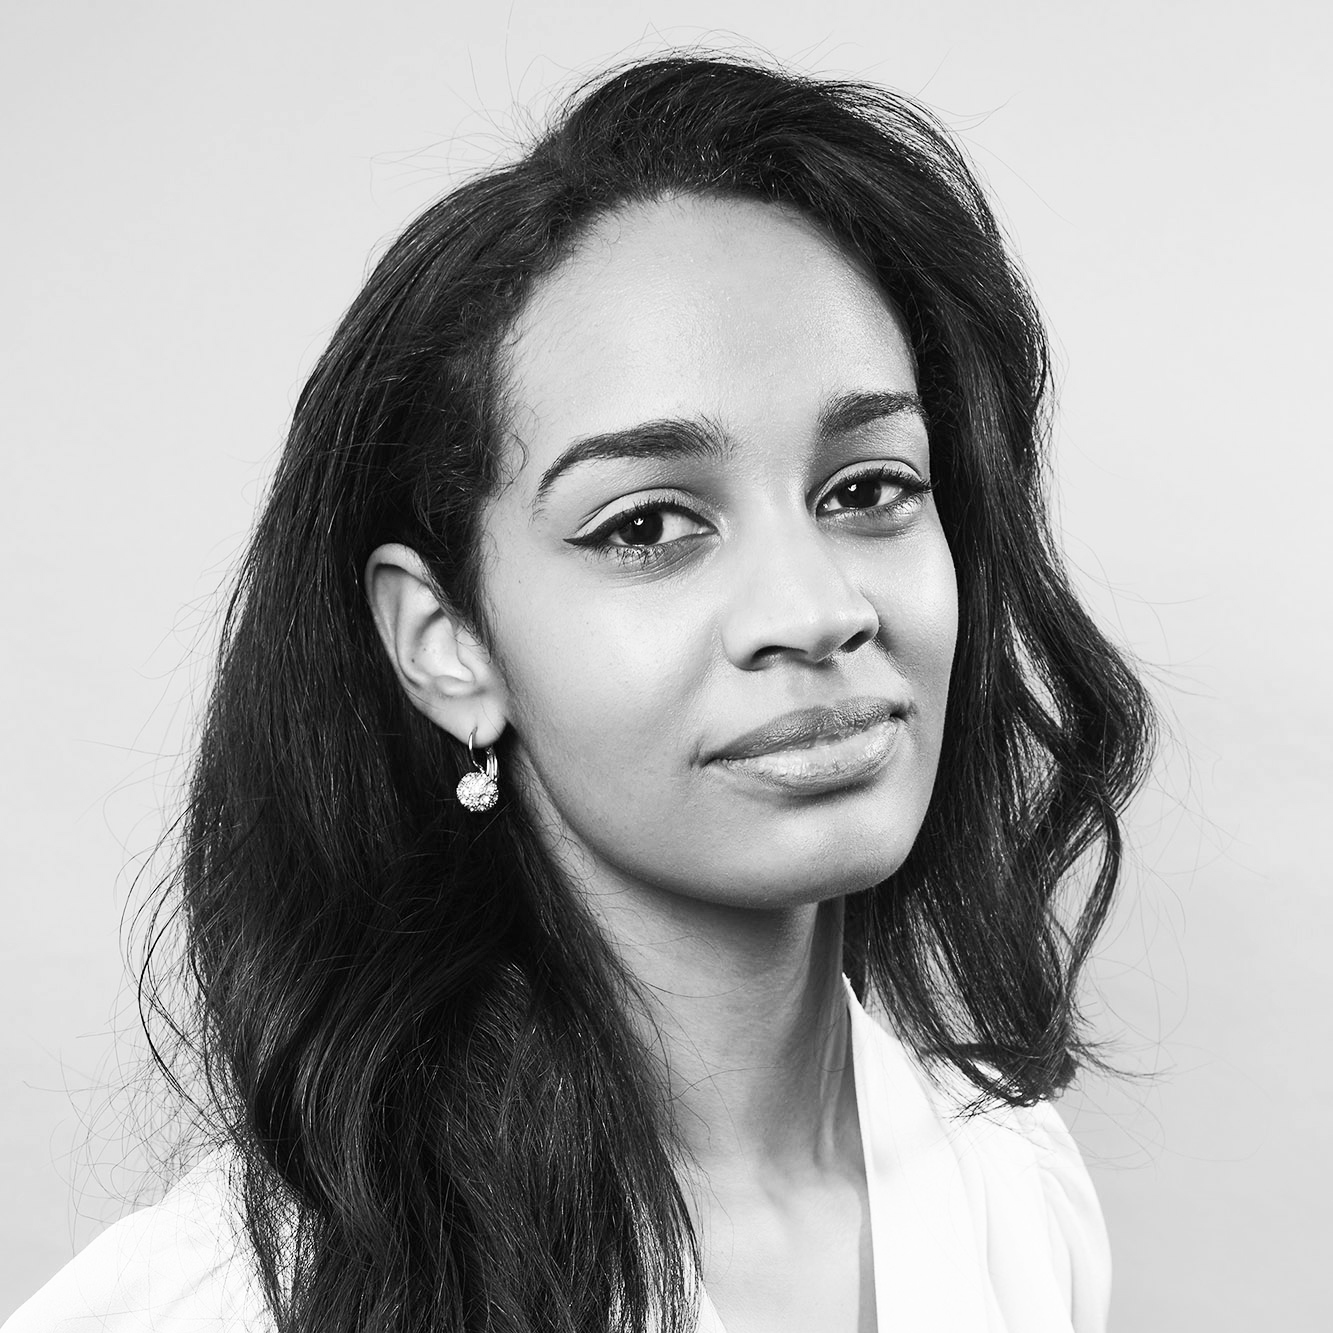 - Mai Abusalih is an architectural designer and researcher. She recently received her Master's Degree in Advanced Architectural Design from Columbia University GSAPP with an Honor Award for Excellence in Design. Since 2013, she has worked as a Designer in various projects, and as a Teaching Assistant in University of Khartoum. Interests include architectural design, research-based design, interior design, and construction administration.